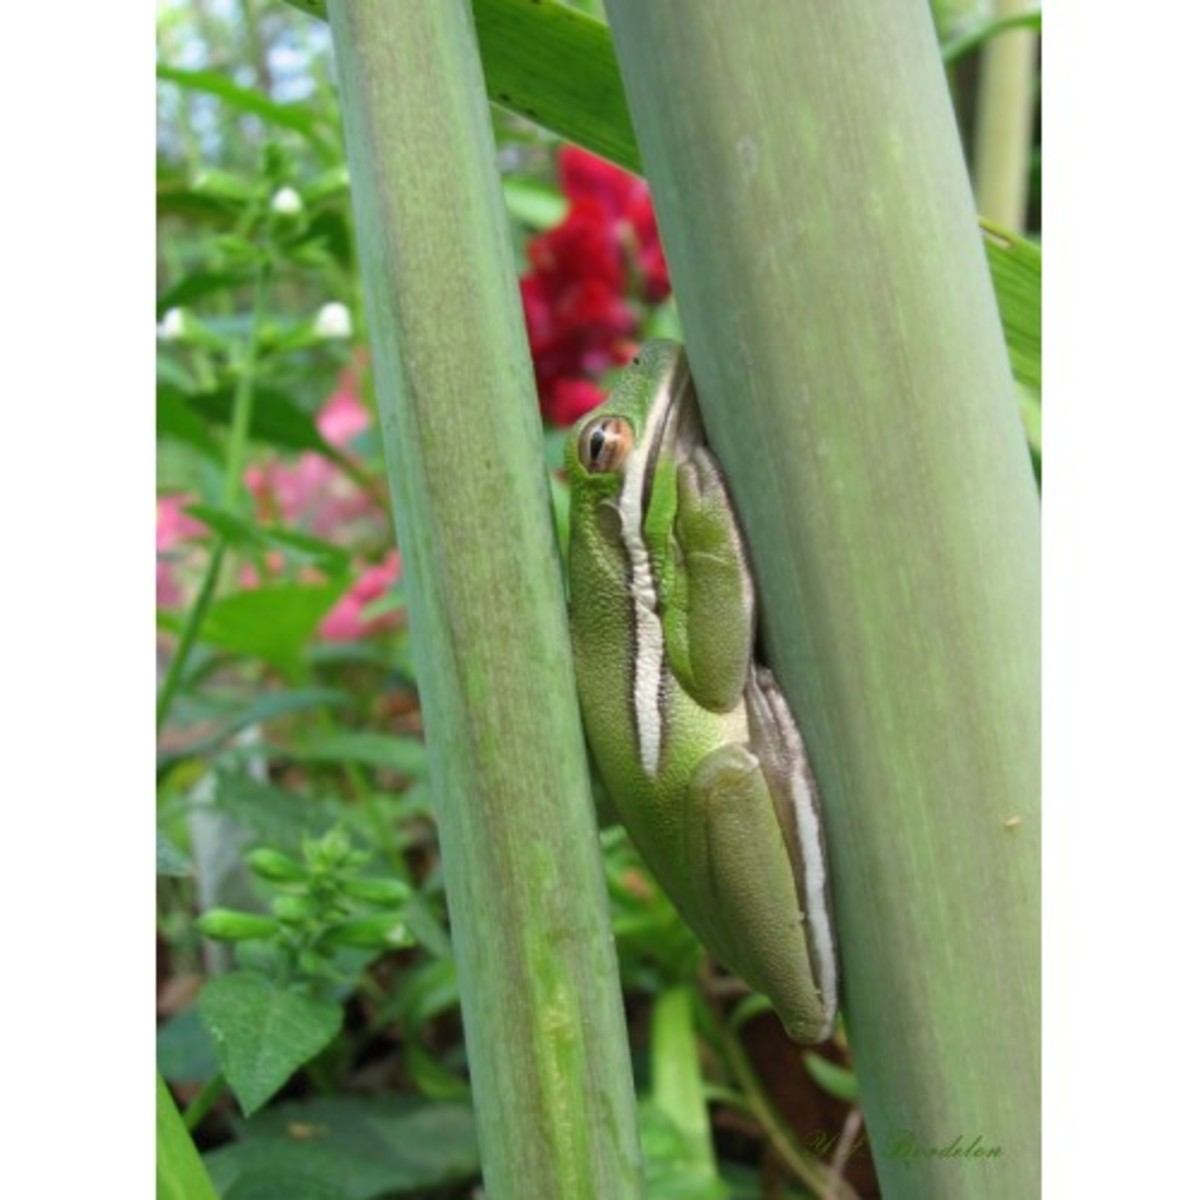 Green Tree Frog uses amaryllis stalks to hide.